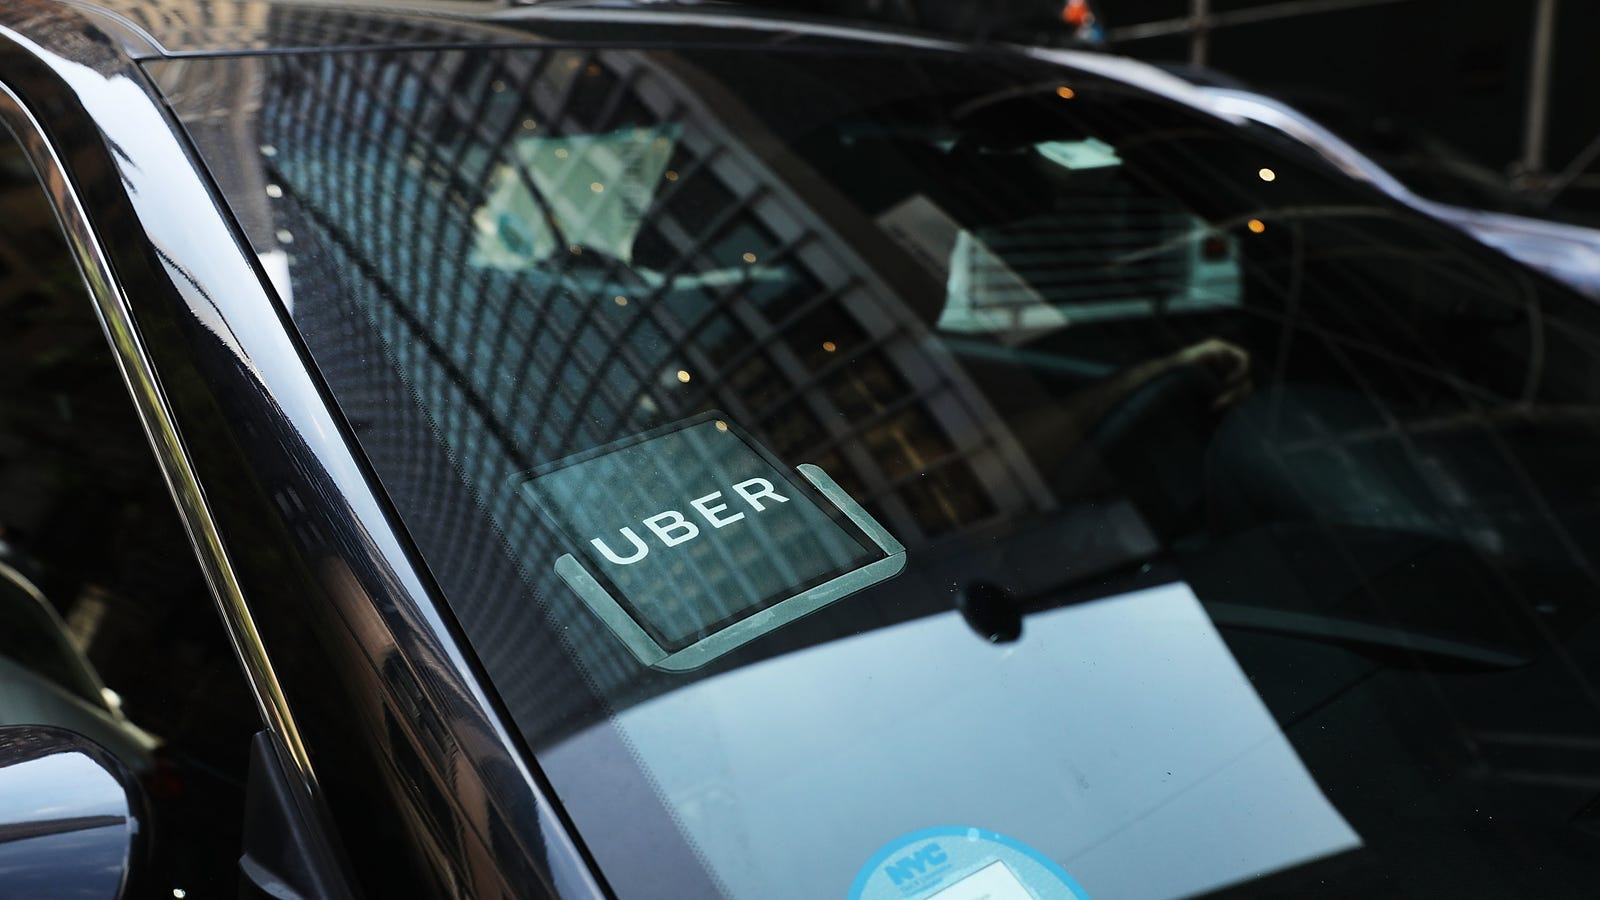 Some Uber Drivers Are Changing Rider Ratings in Retaliation